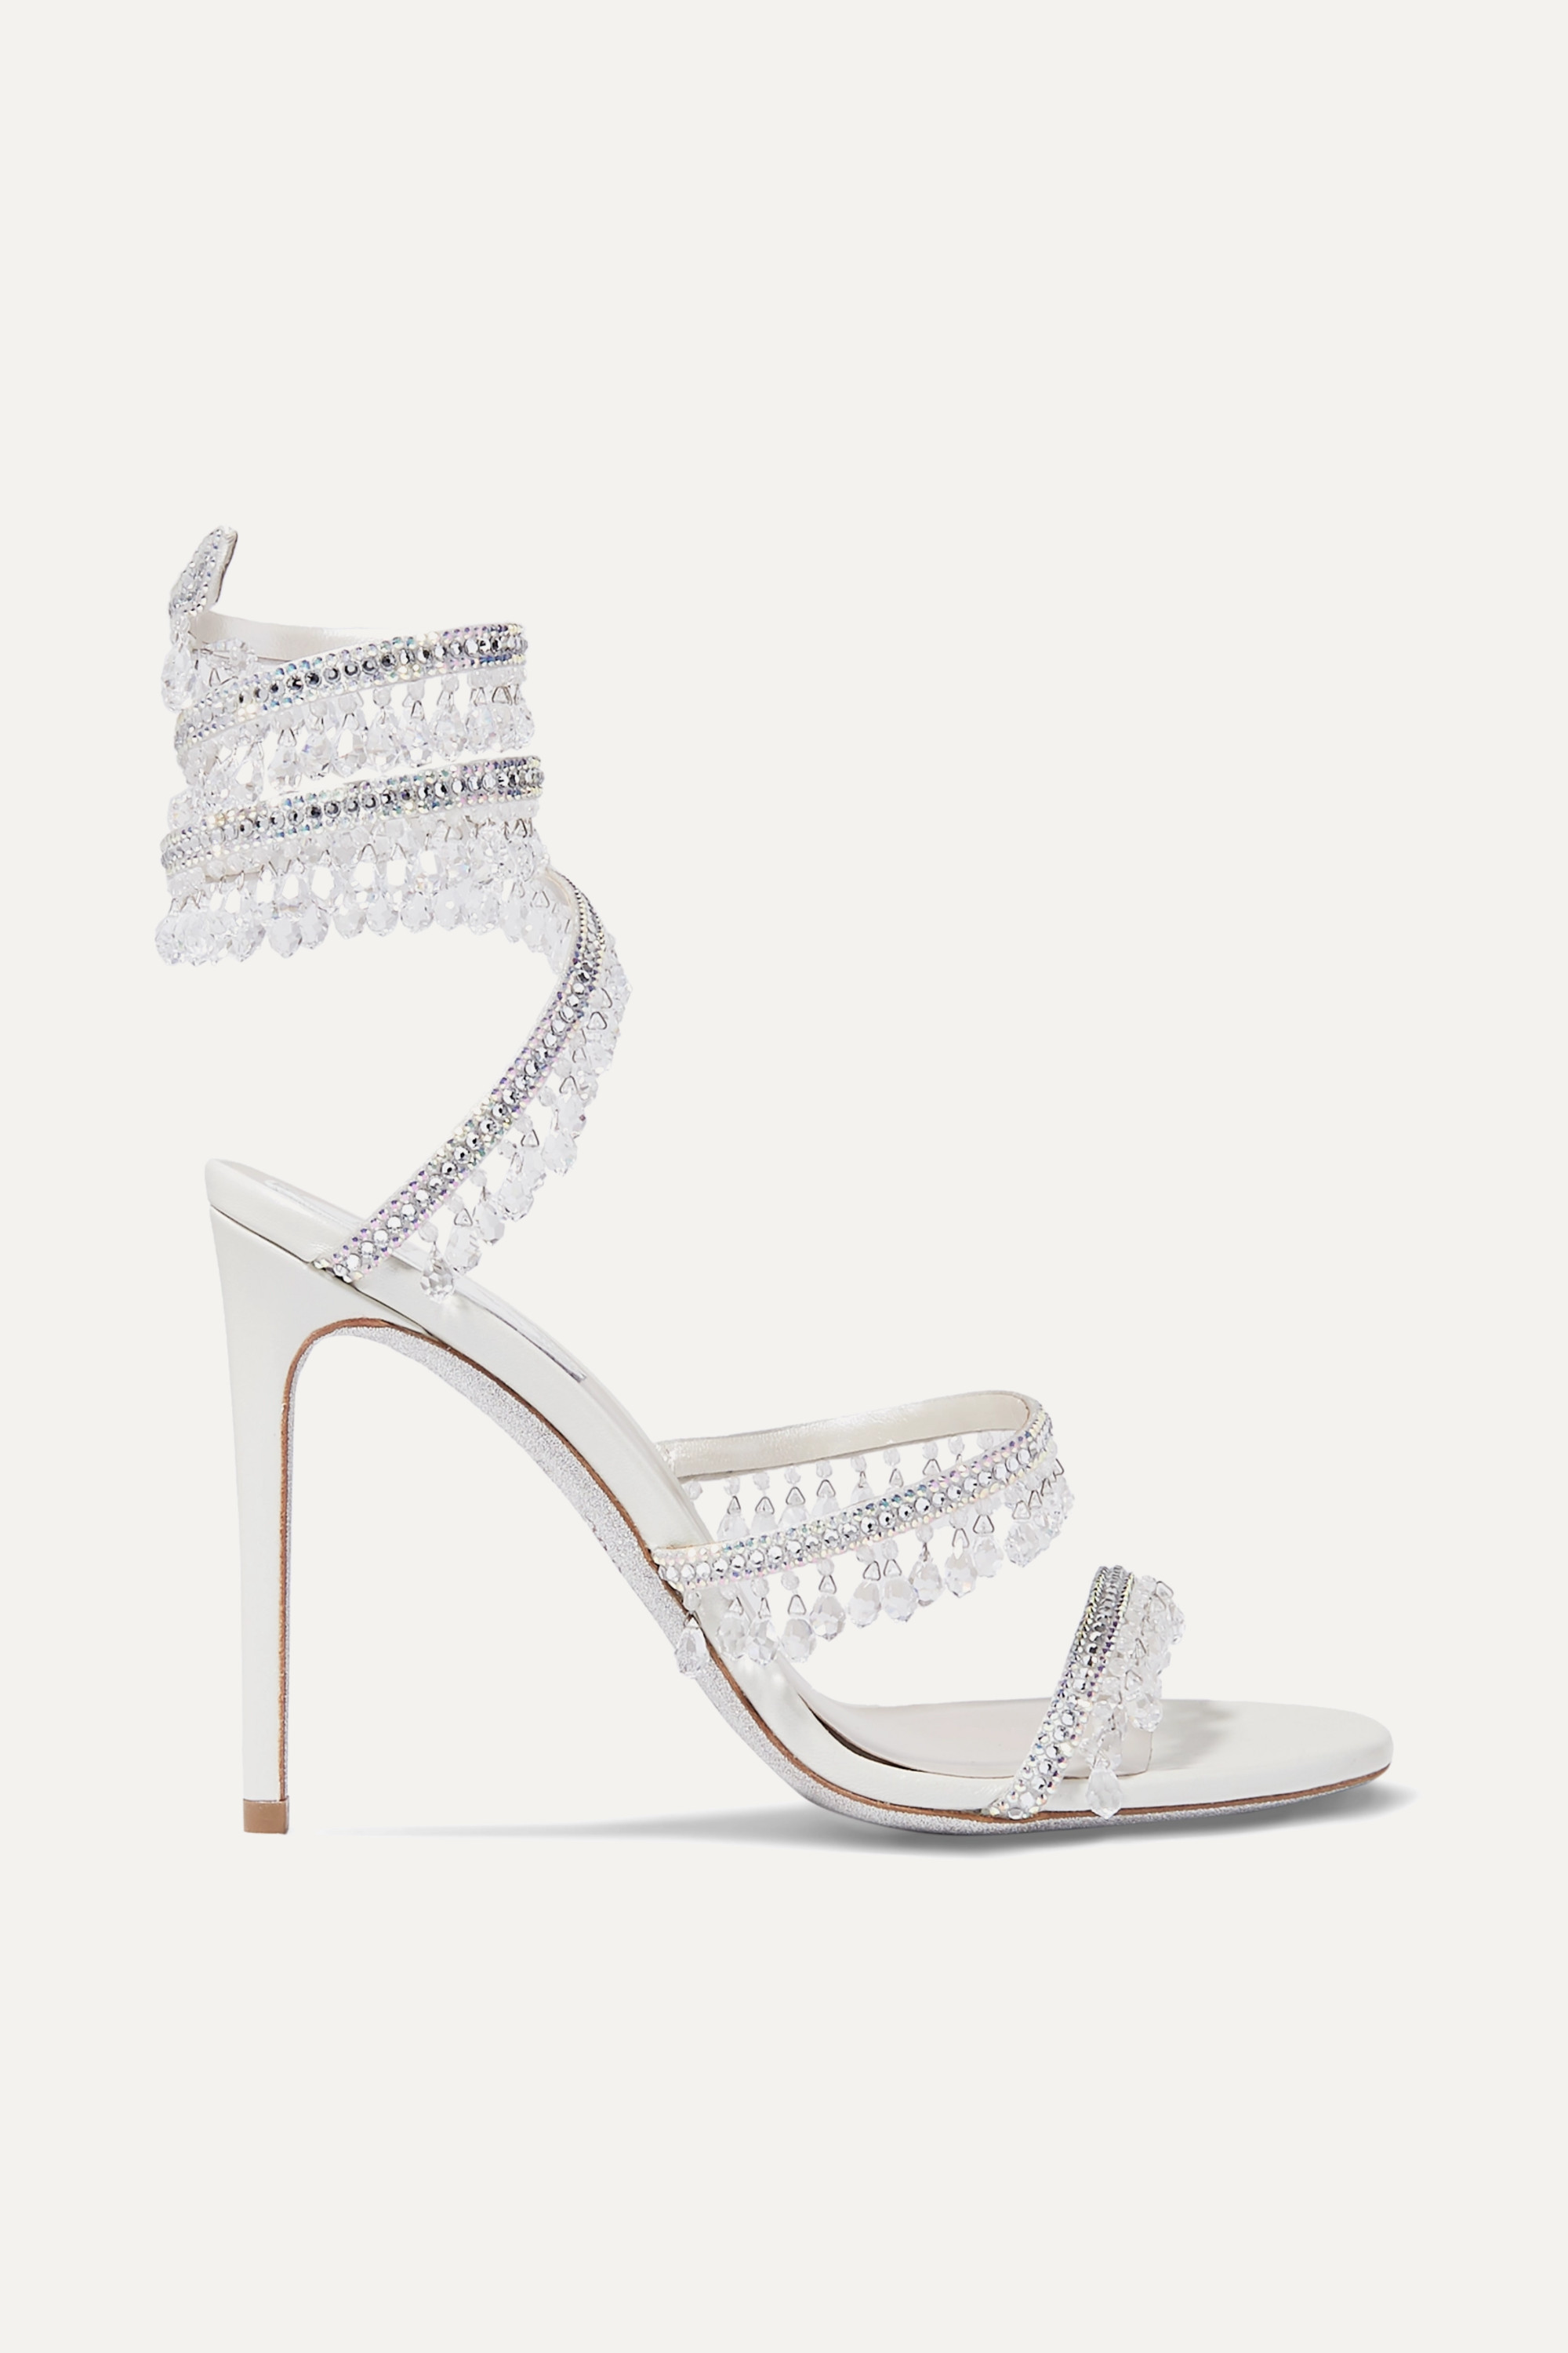 René Caovilla Cleo embellished metallic satin and leather sandals